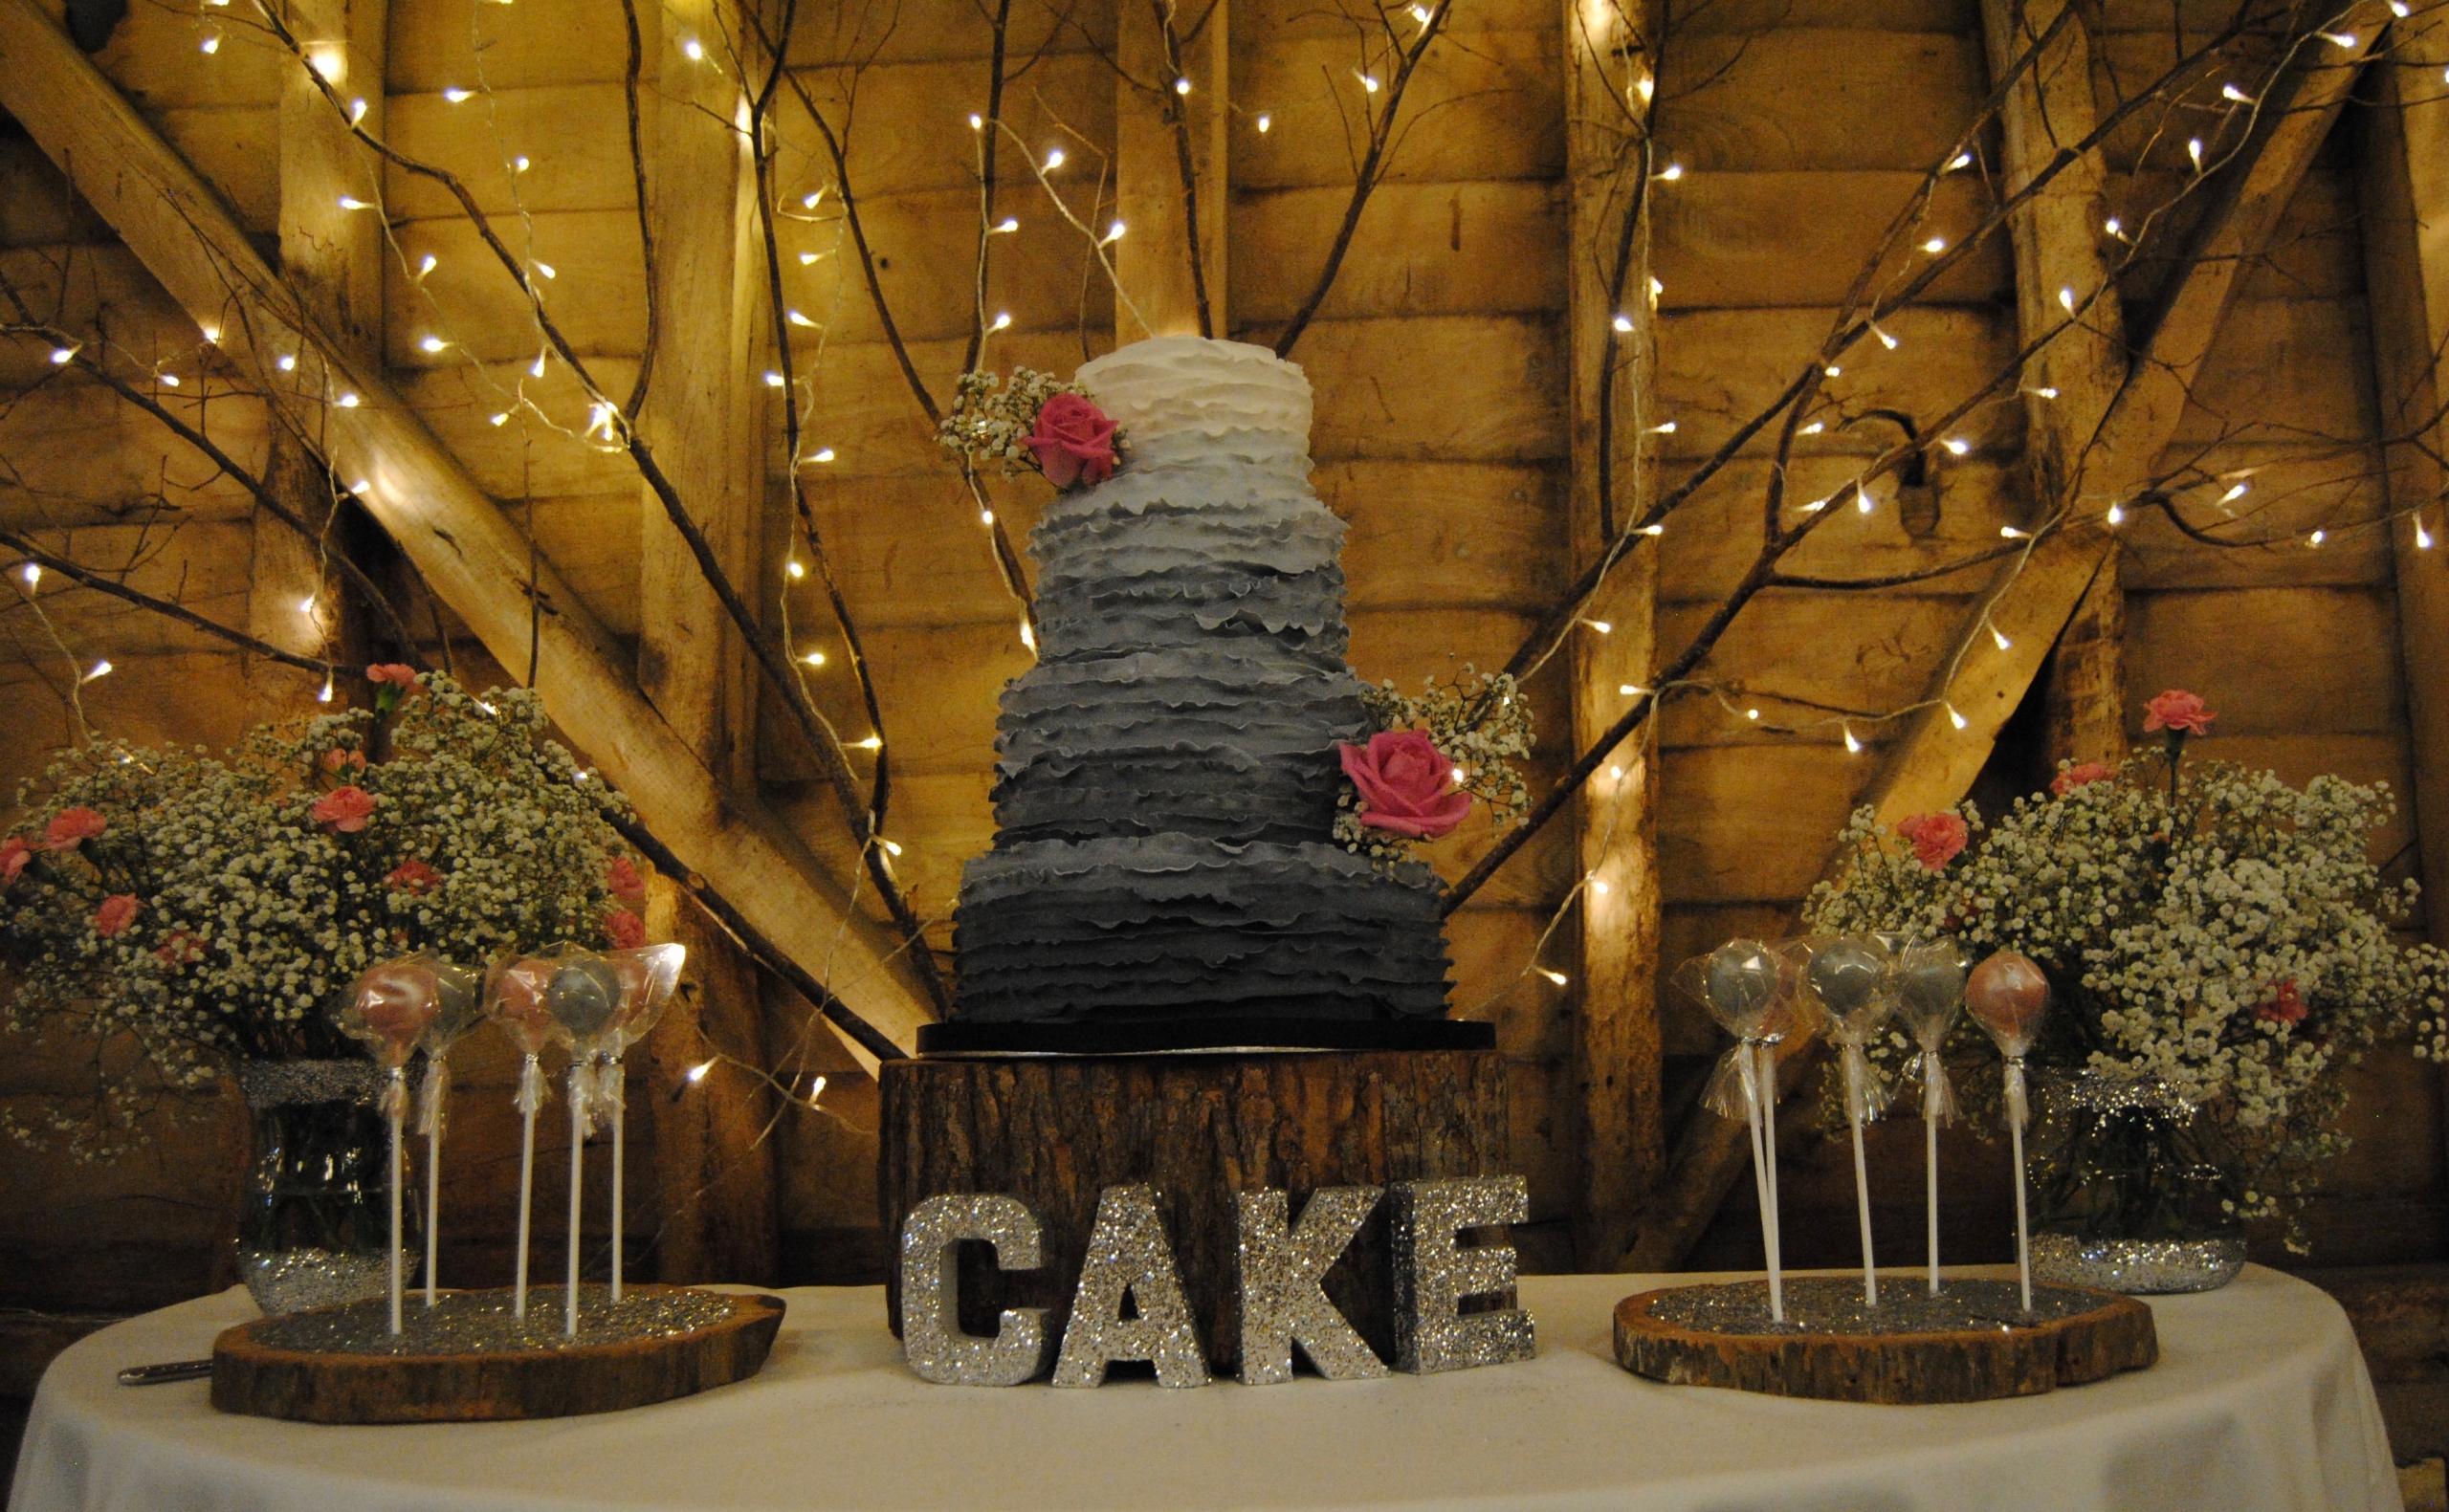 A grey and cream wedding cake on a piece of wood